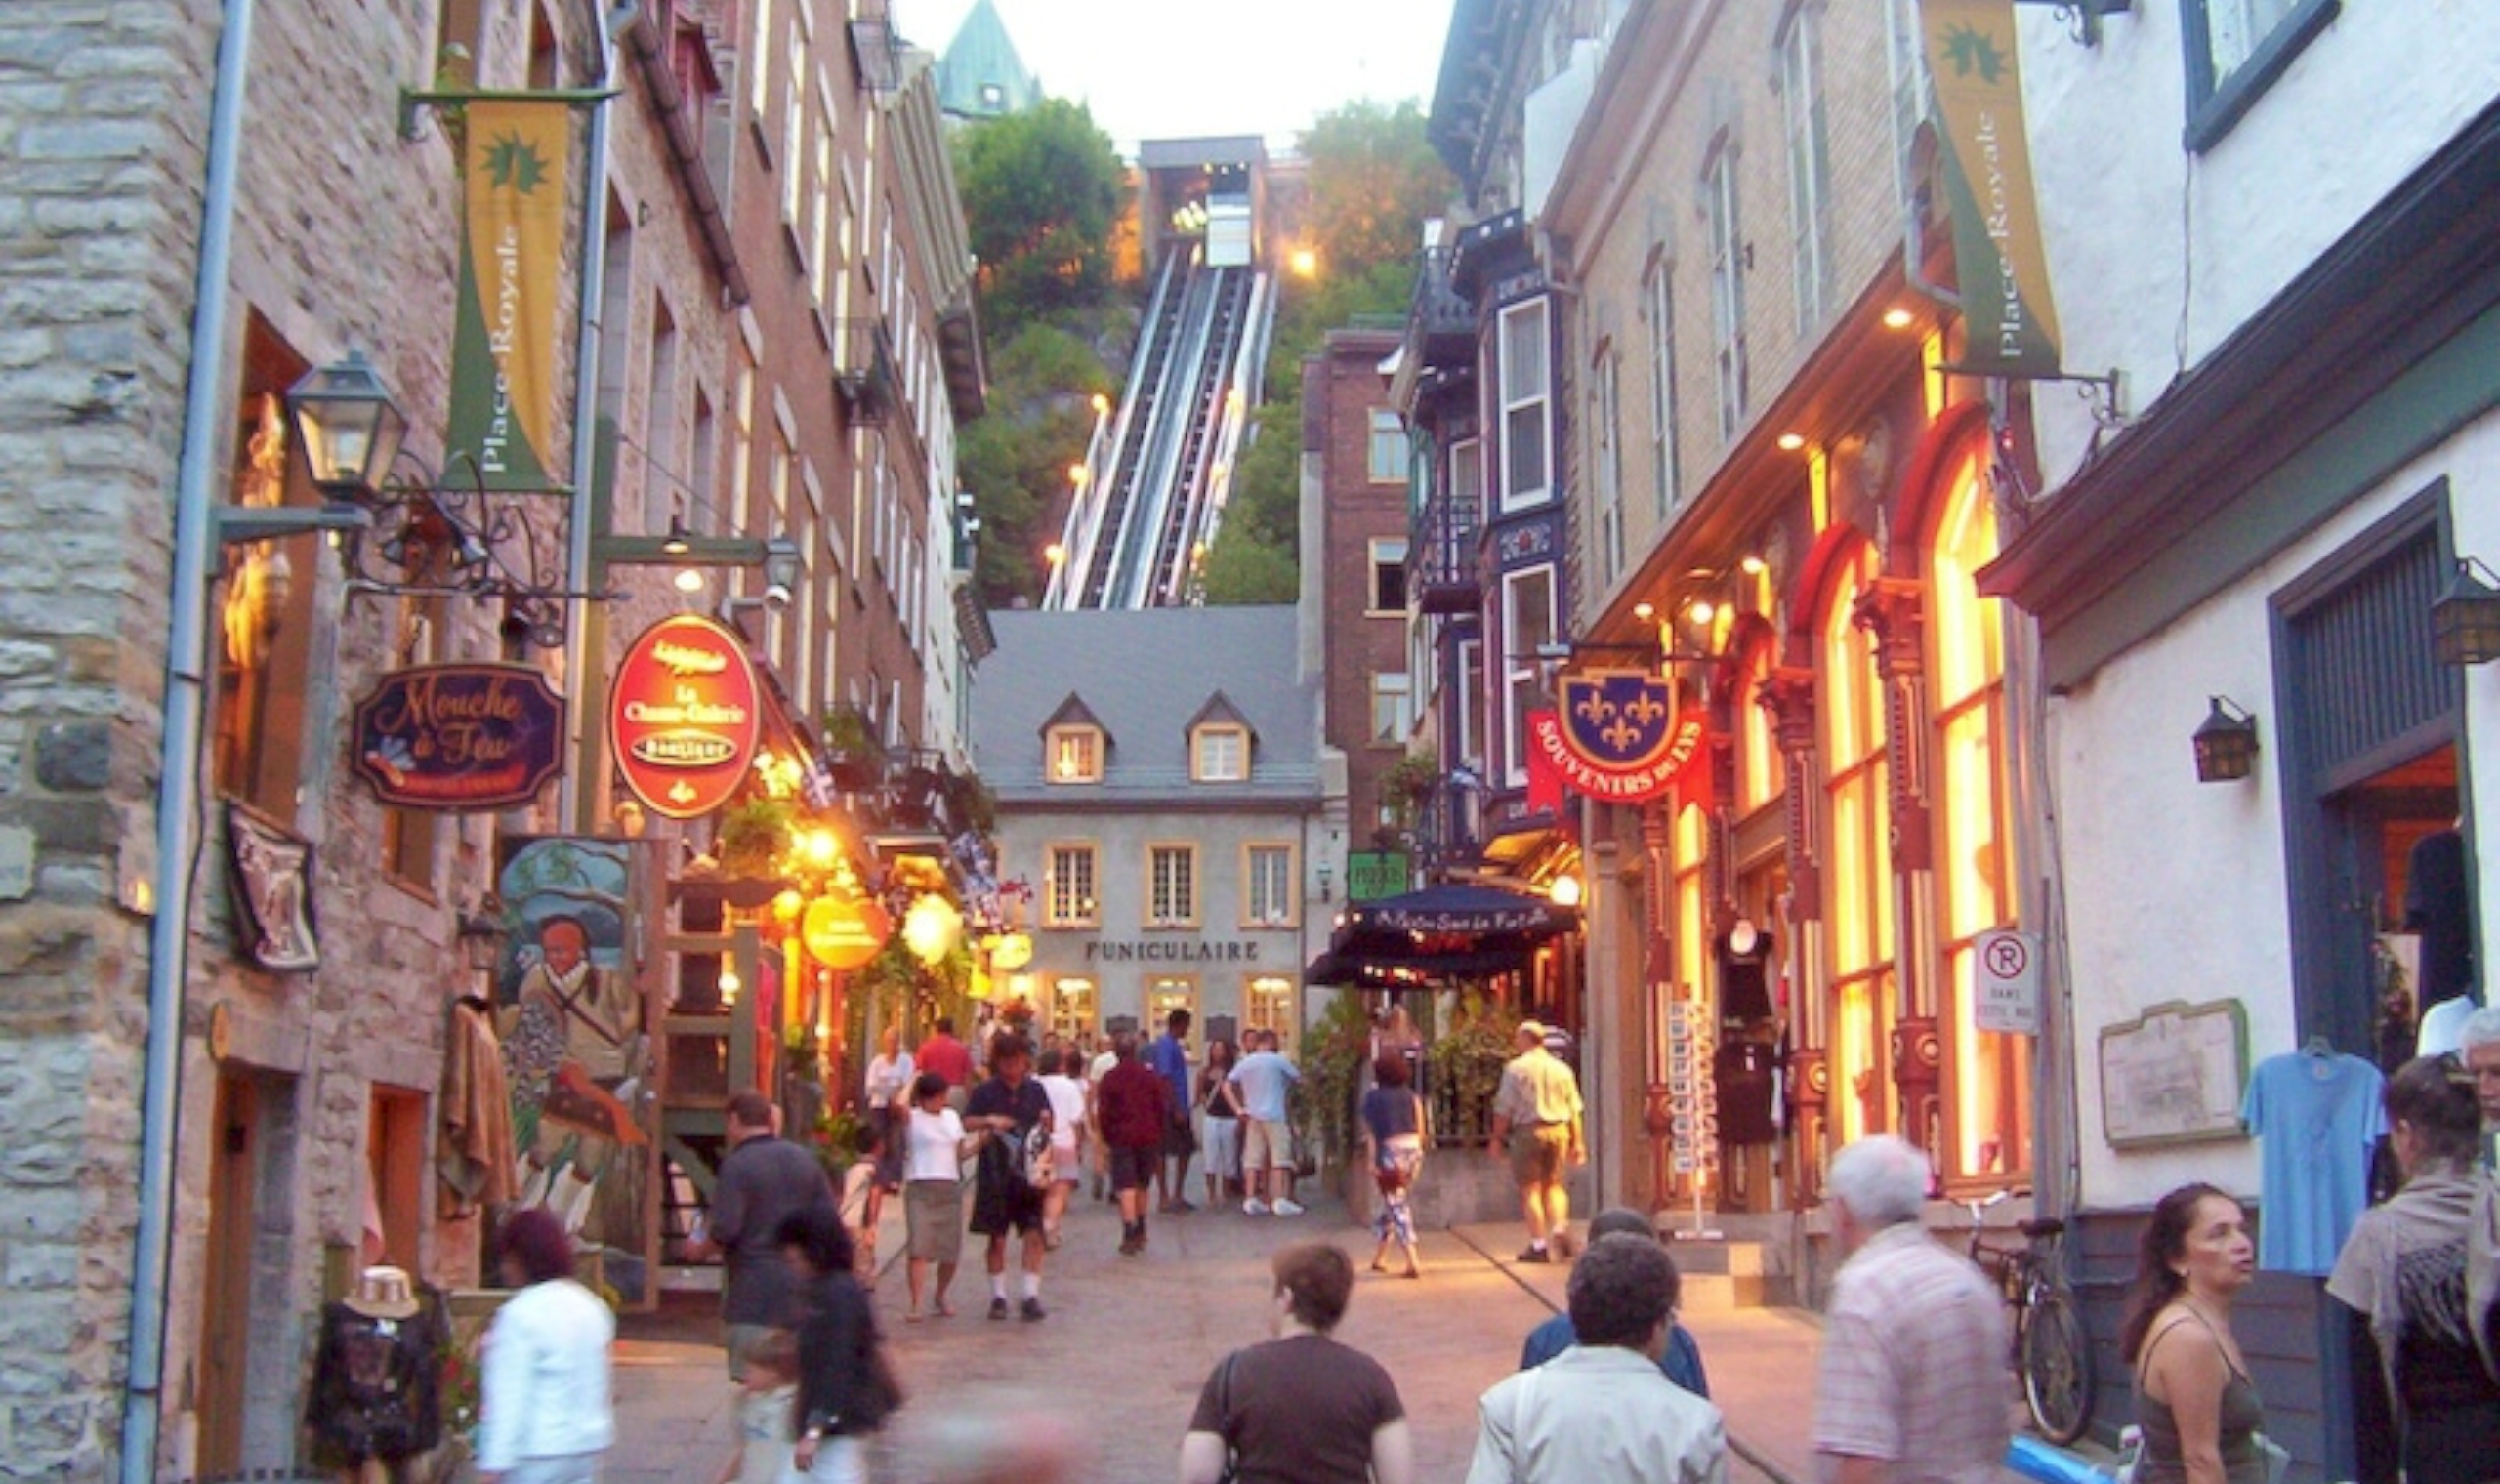 Quebec Montreal Montreal Quebec City Breaks Canada Canadianaffair